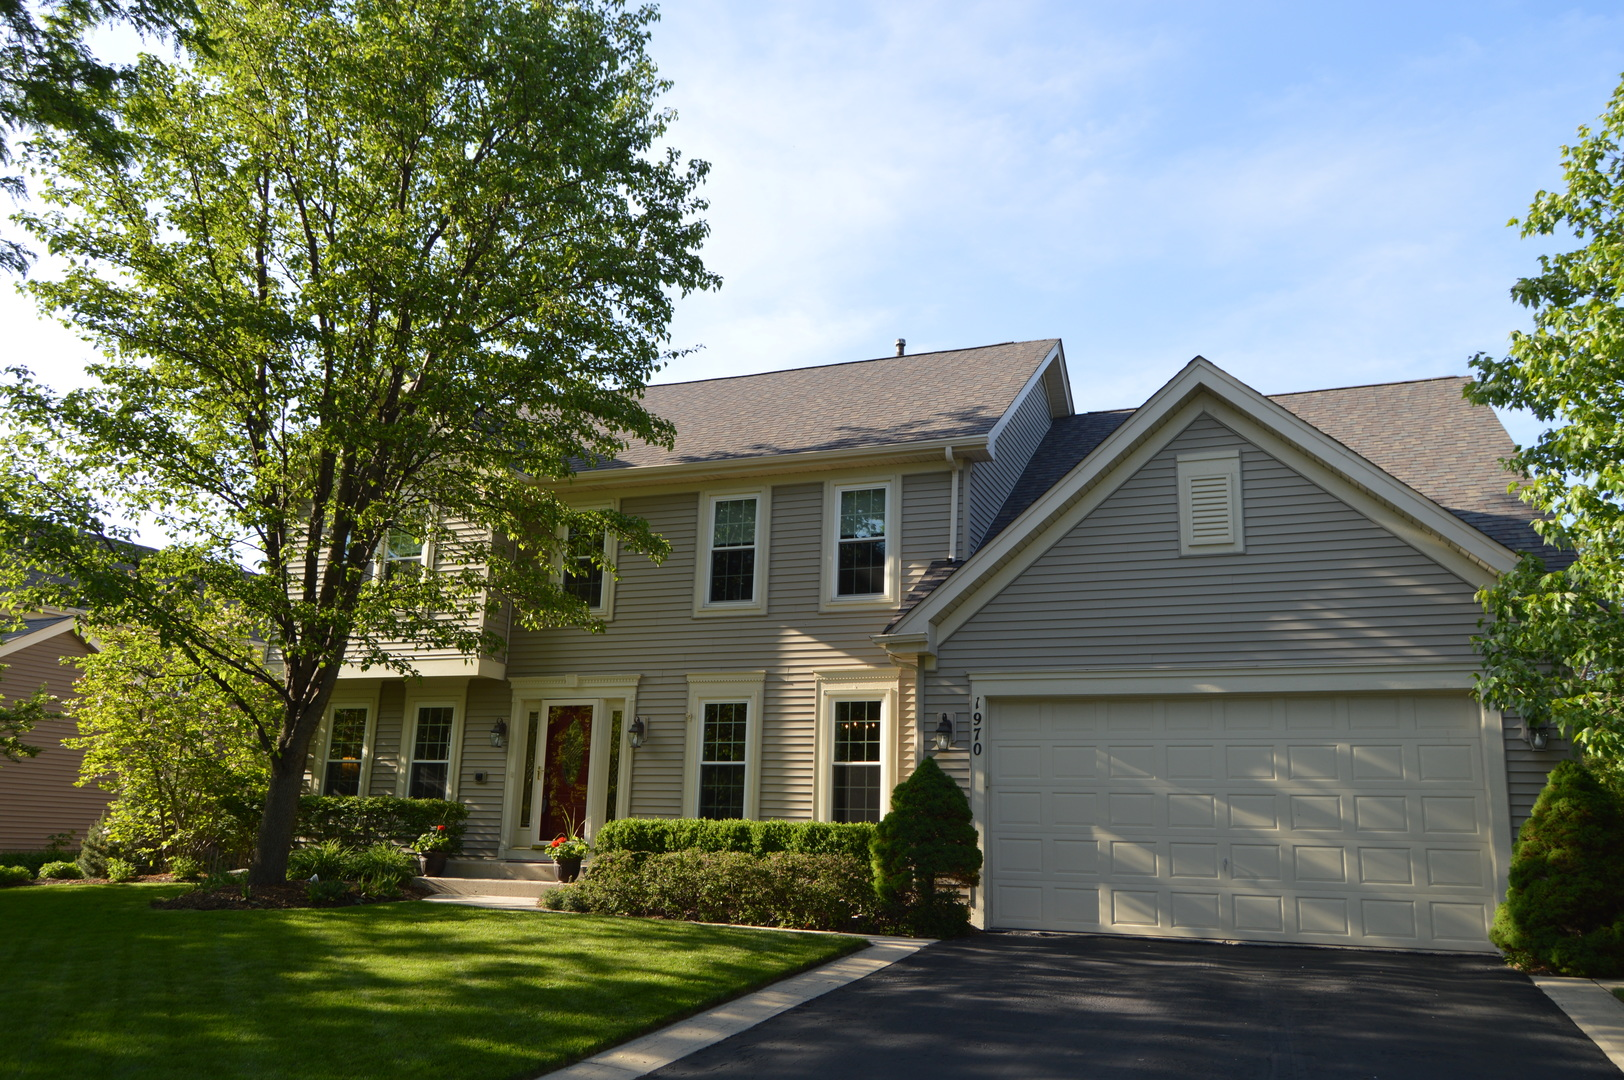 1970 Cloverdale Lane, Algonquin in Kane County, IL 60102 Home for Sale